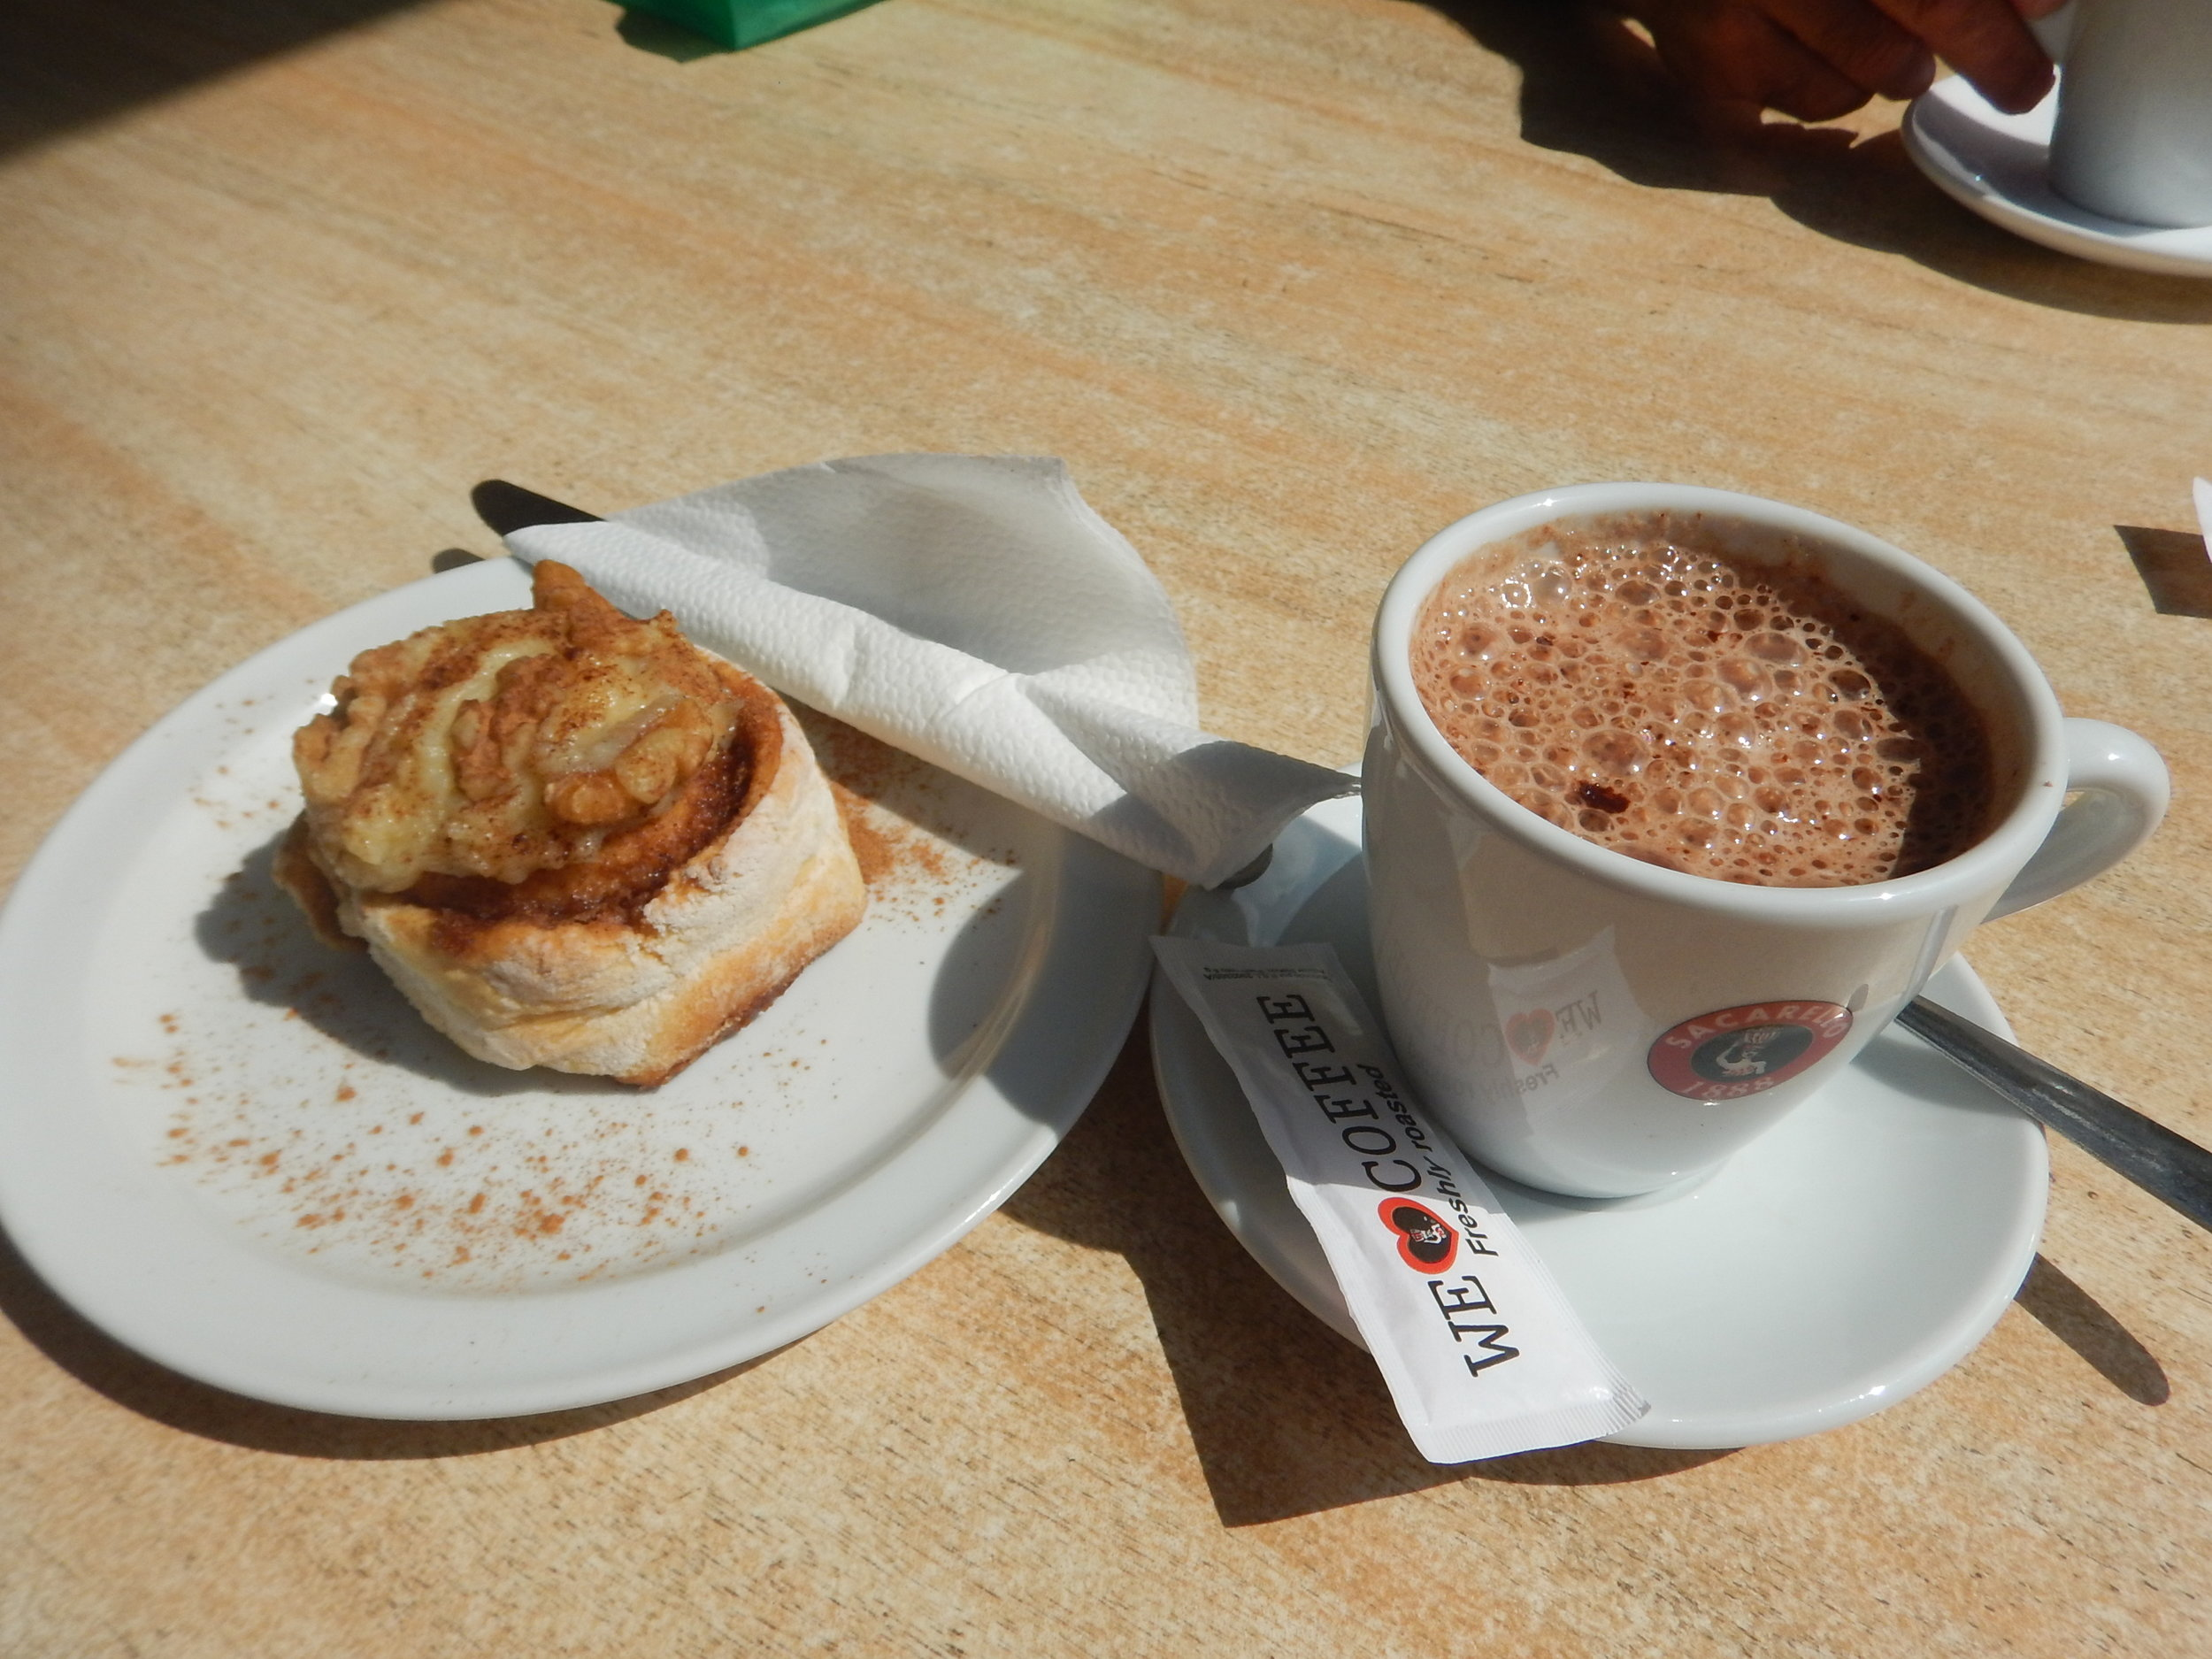 my first stop was at picadilly bar for a hot chocolate and cinnamon bun. The bun was amazing, moist, plenty on cinnamon, and a huge dollop of apple sauce on top then plenty of walnuts for garnish. Yummo.